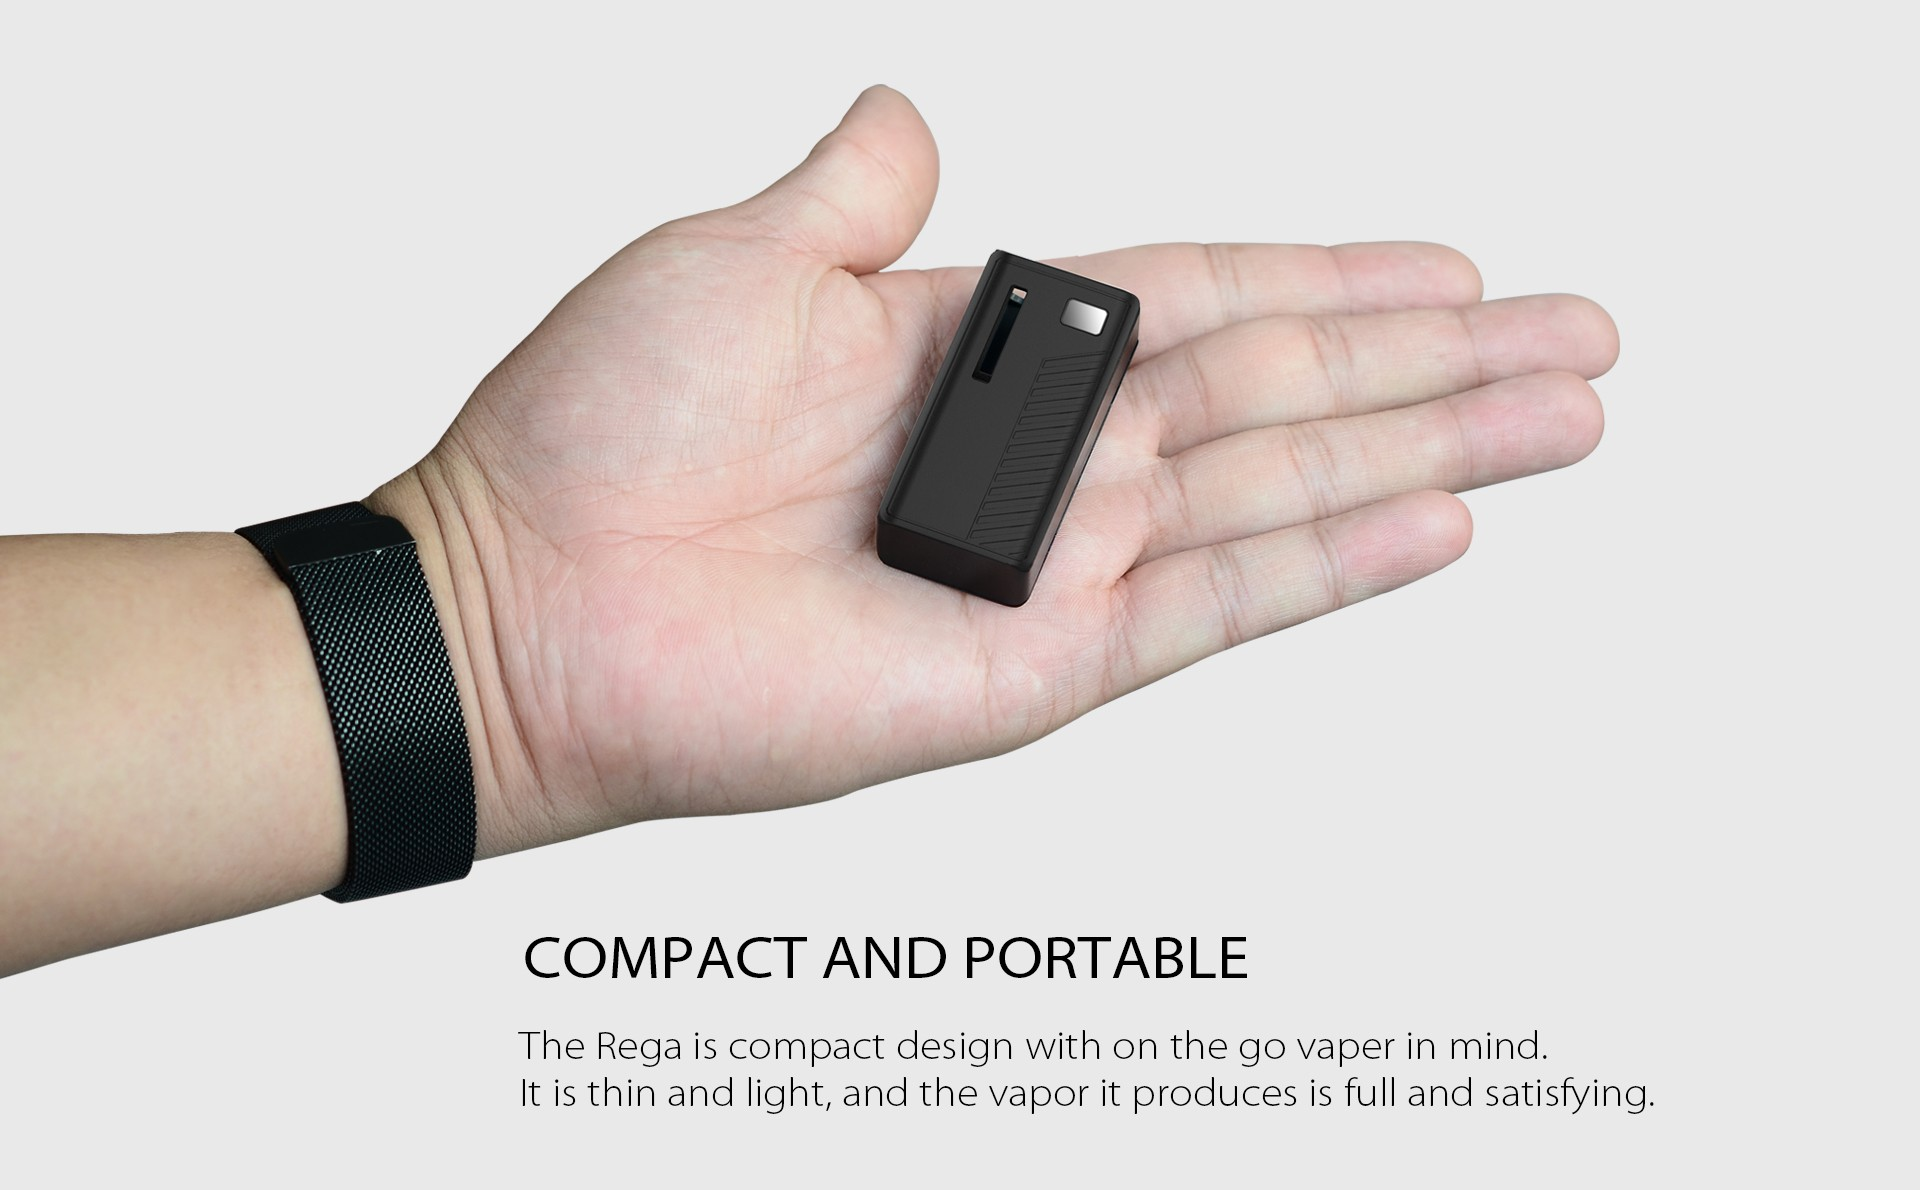 The Rega is compact design with on the go vaper in mind.